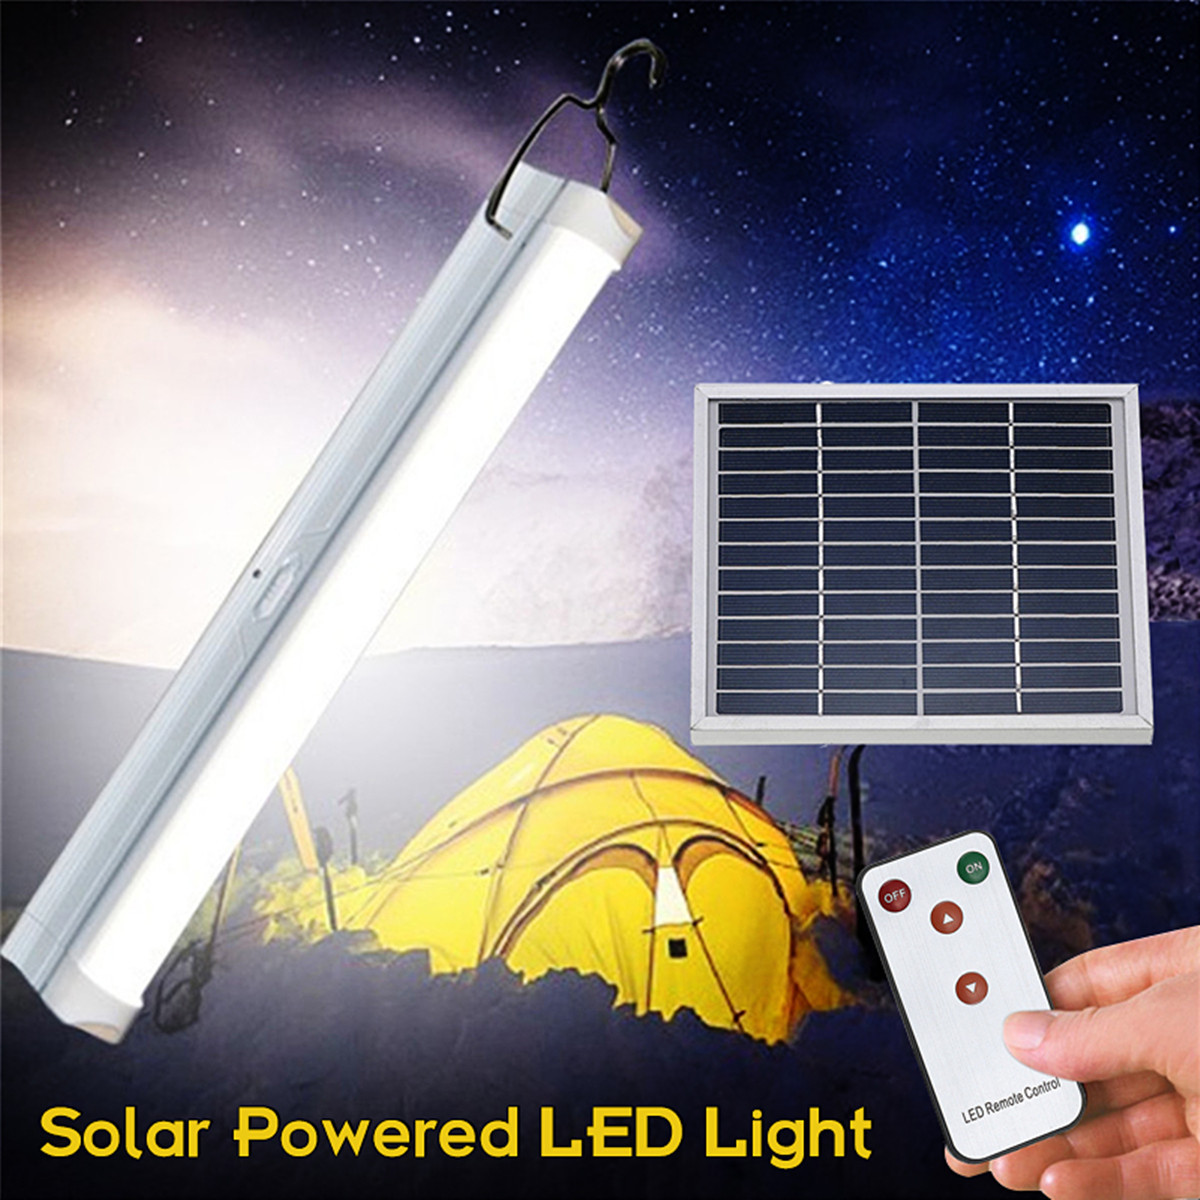 Solar Powered Lights 30 LED Bulb Outdoor Garden Solar Light Floodlight With Remote Control Camping Emergency Lighting Lamp 3 7v 1000mah 22 led remote control solar lamp hooking camp garden lighting outdoor indoor m25